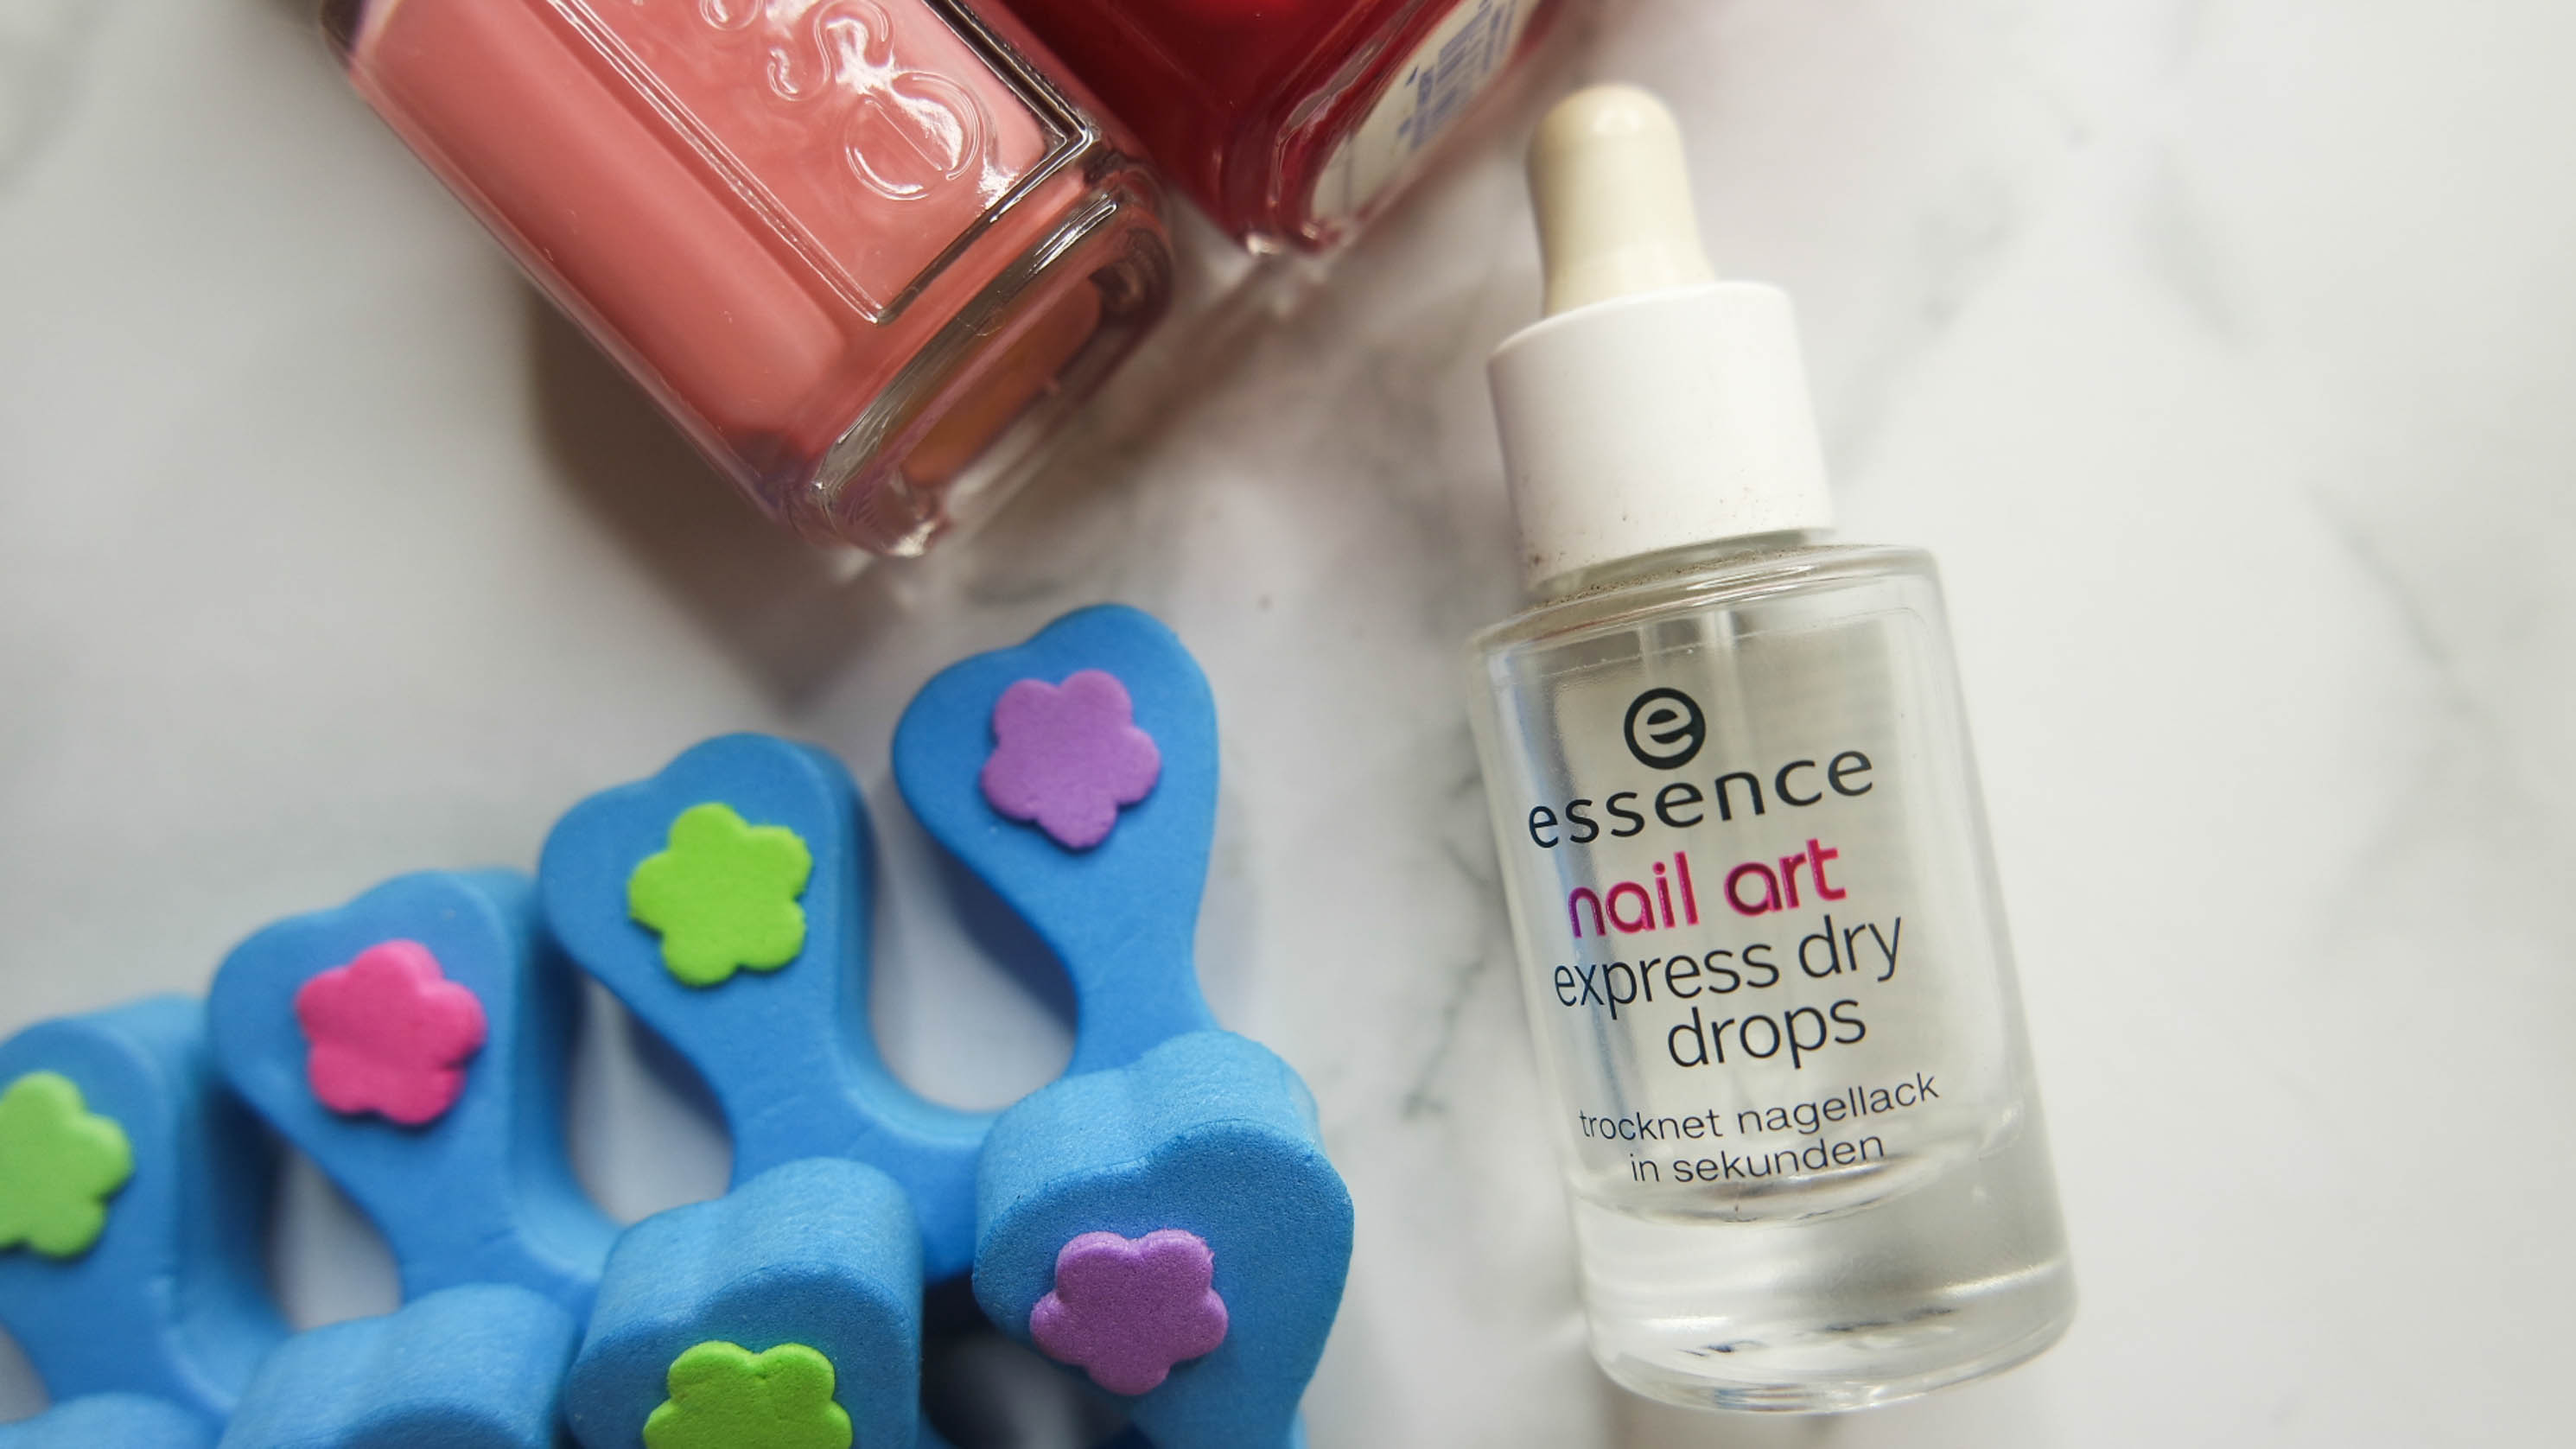 Essence-Nail-Art-Express-Dry-Drops